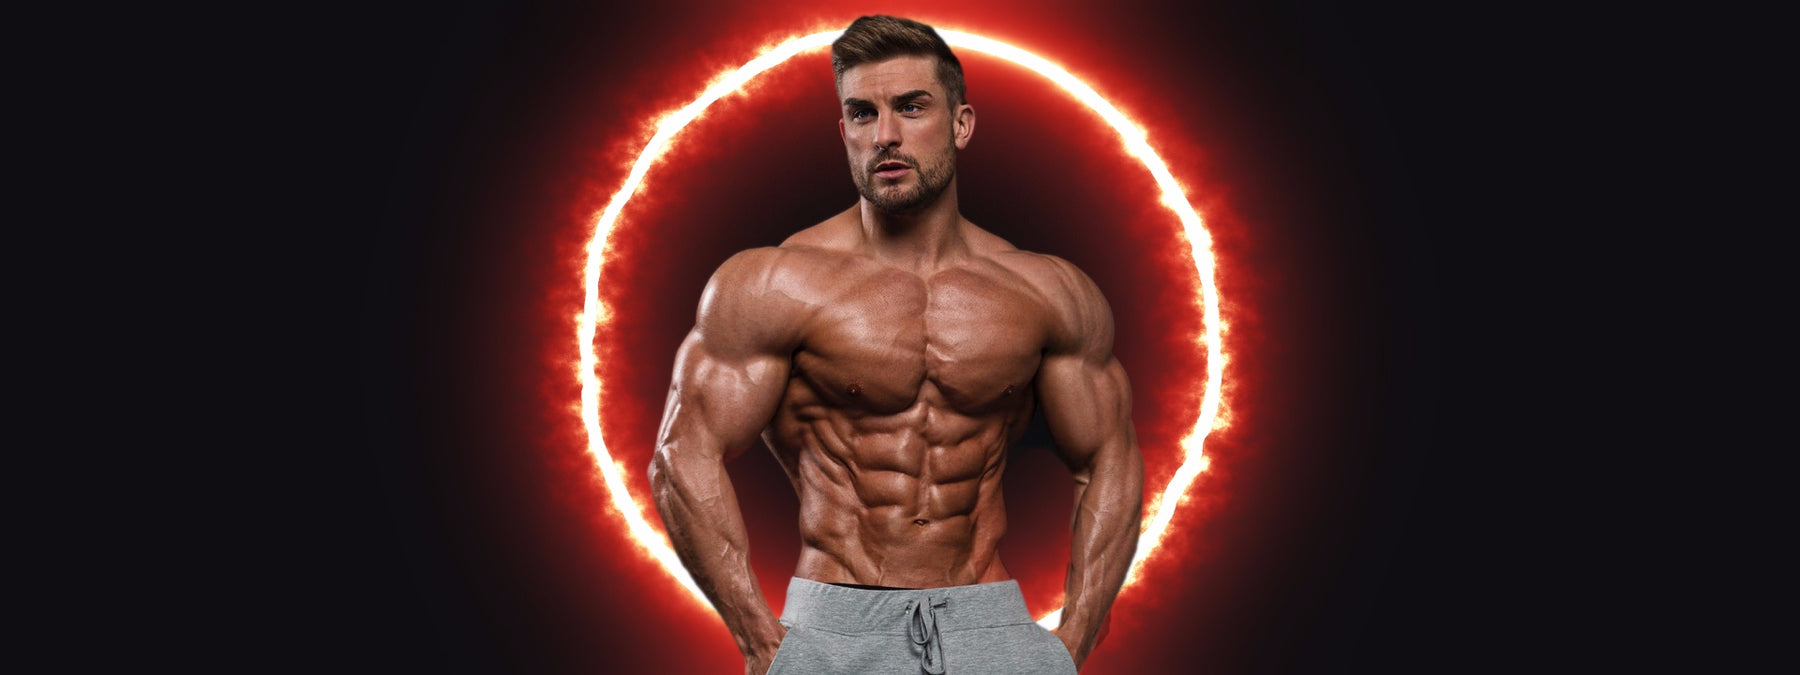 Ryan Terry - 4 Fat Loss Tips to Get Ripped